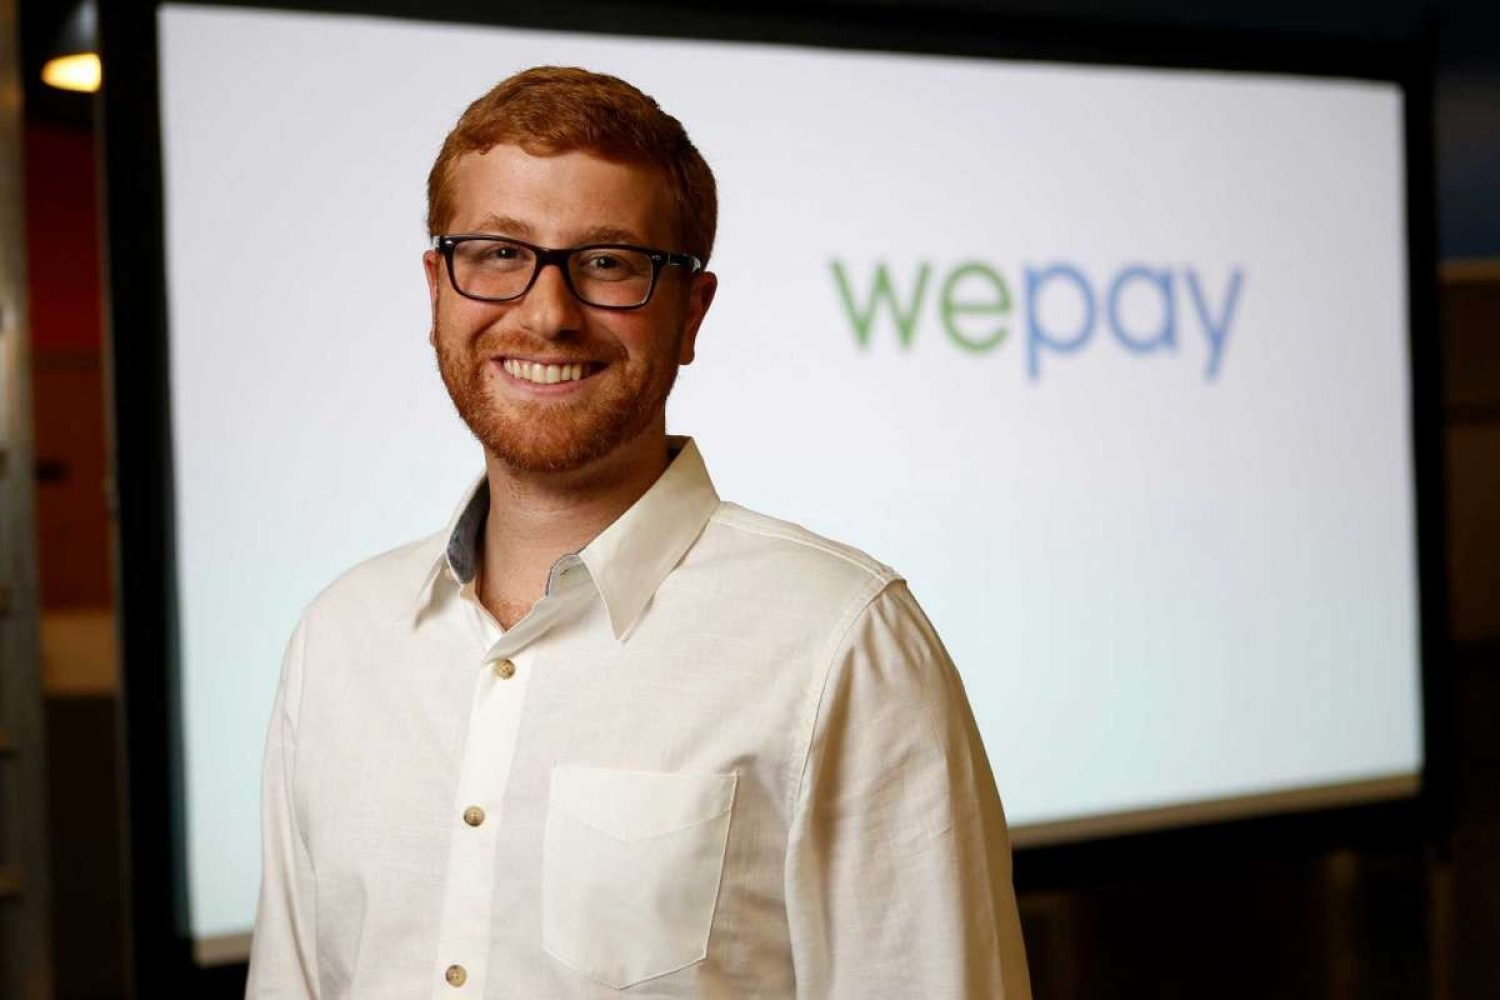 WePay founder Bill Clerico